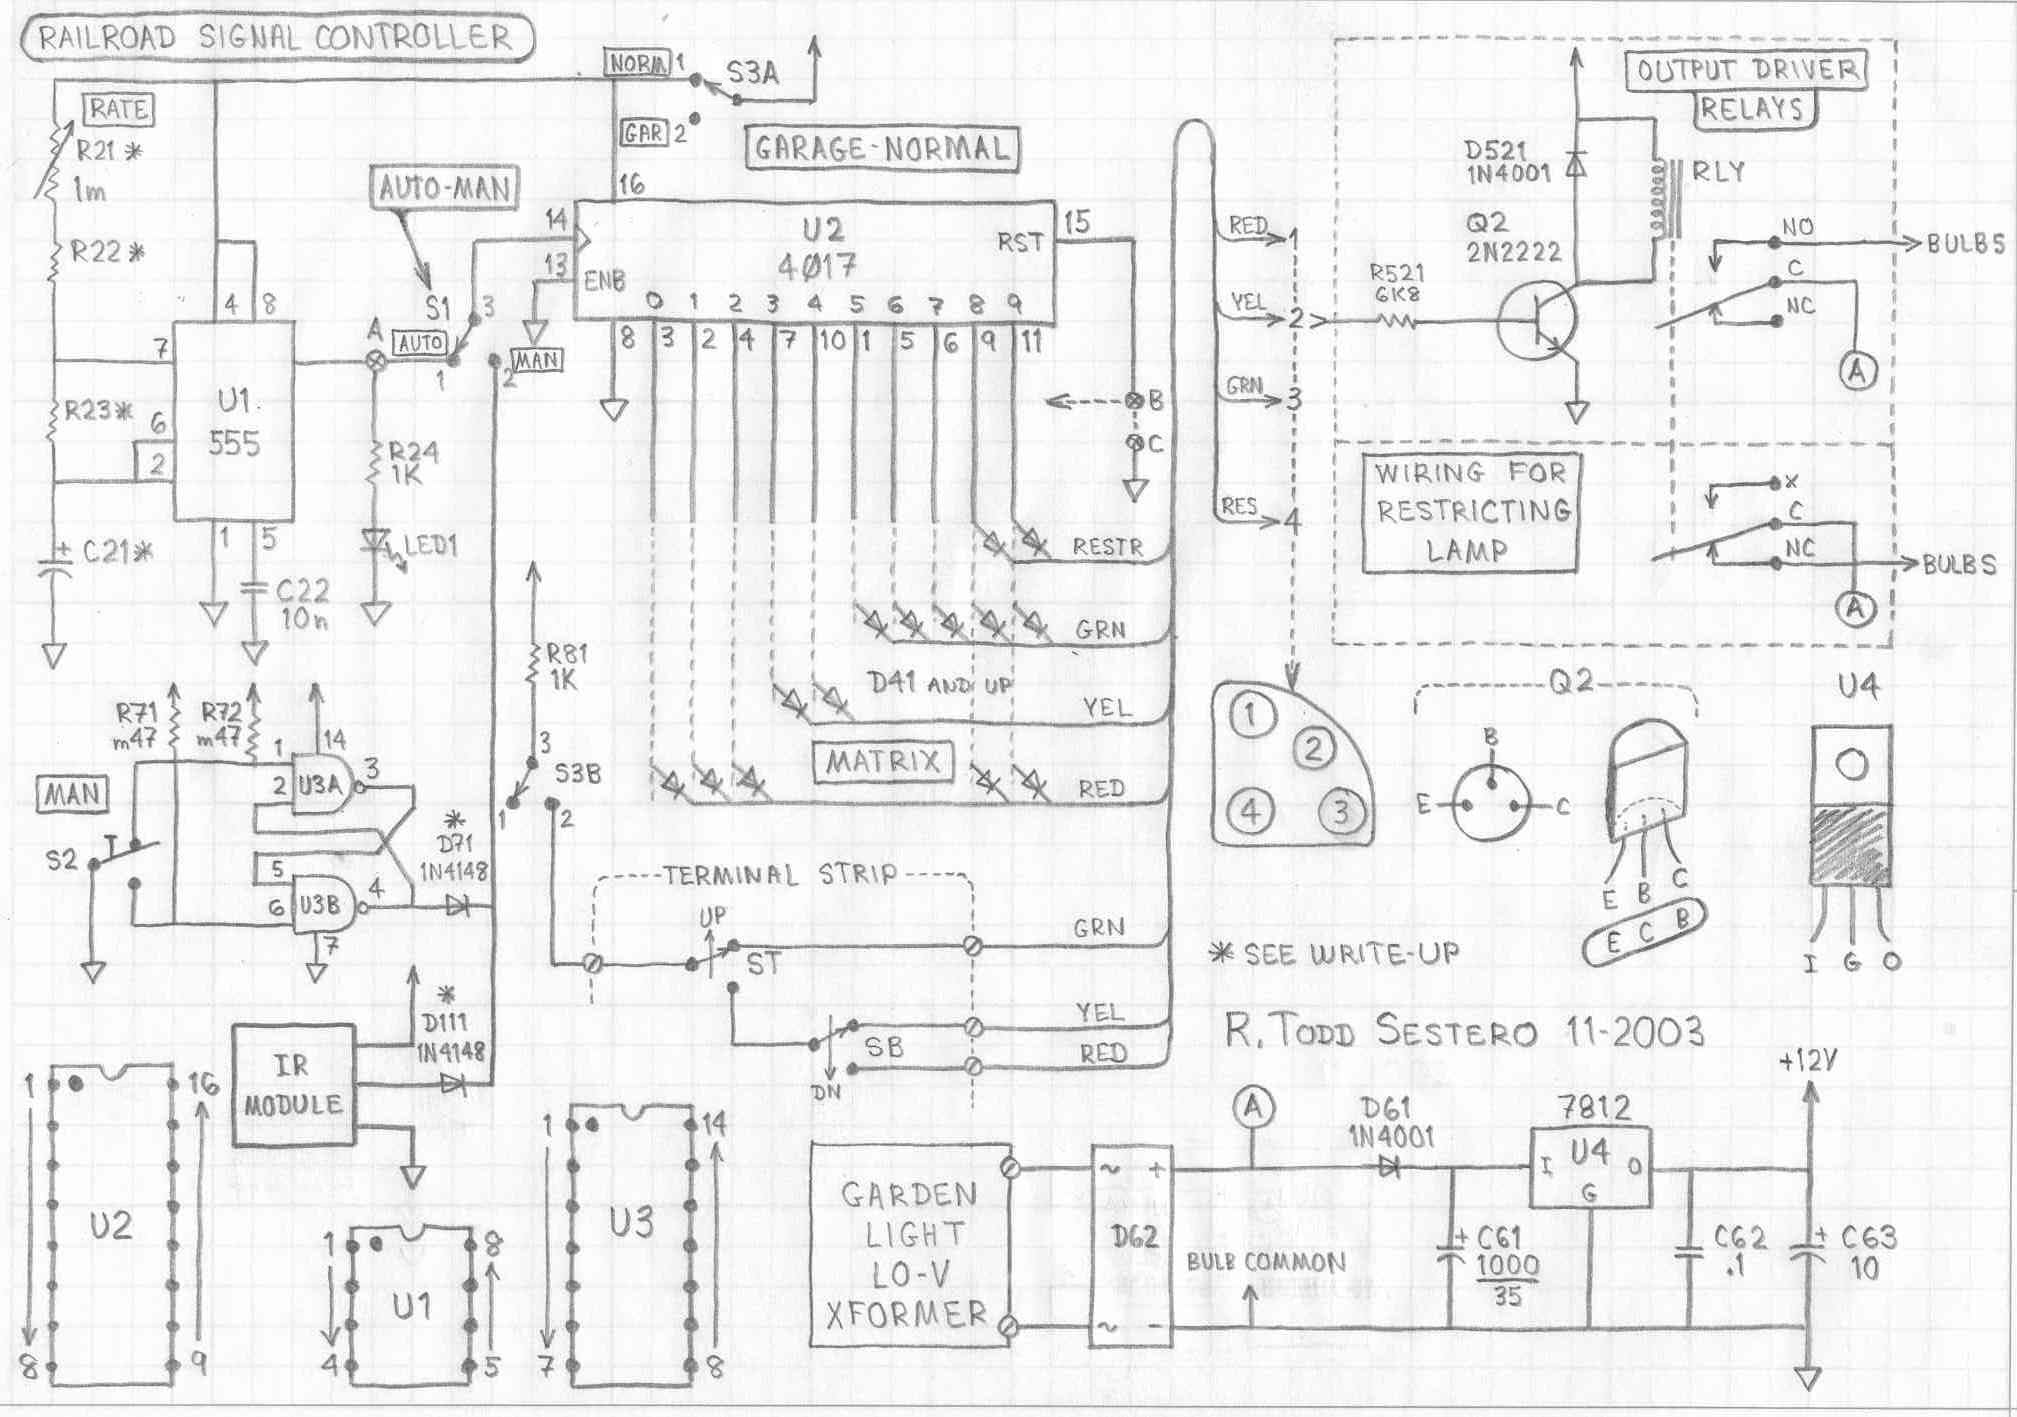 Railroad Signal Driver Opto 22 Relay Wiring Diagram The Top Drawing Is Complete Schematic For Control Circuit